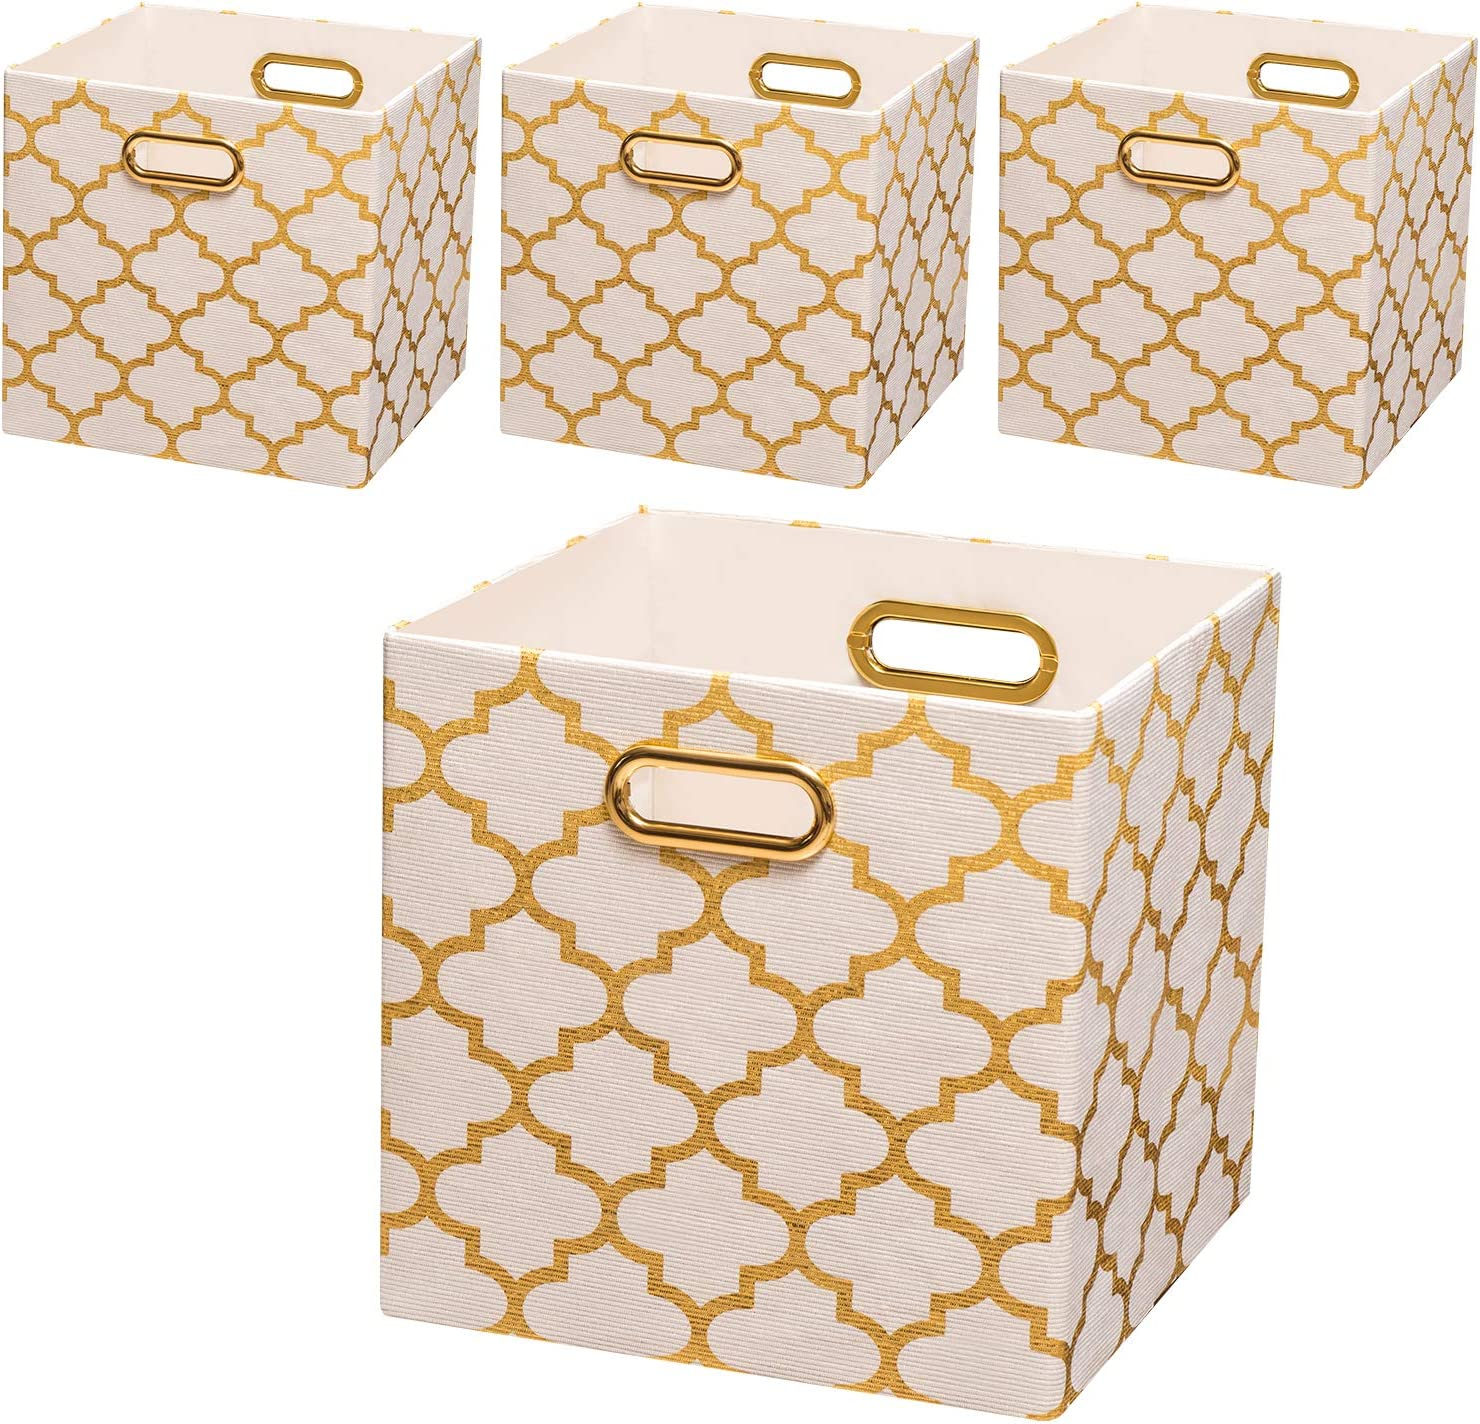 Posprica Collapsible Storage Bins,11×11 Fabric Storage Baskets, 4pcs,White-Gold Lantern